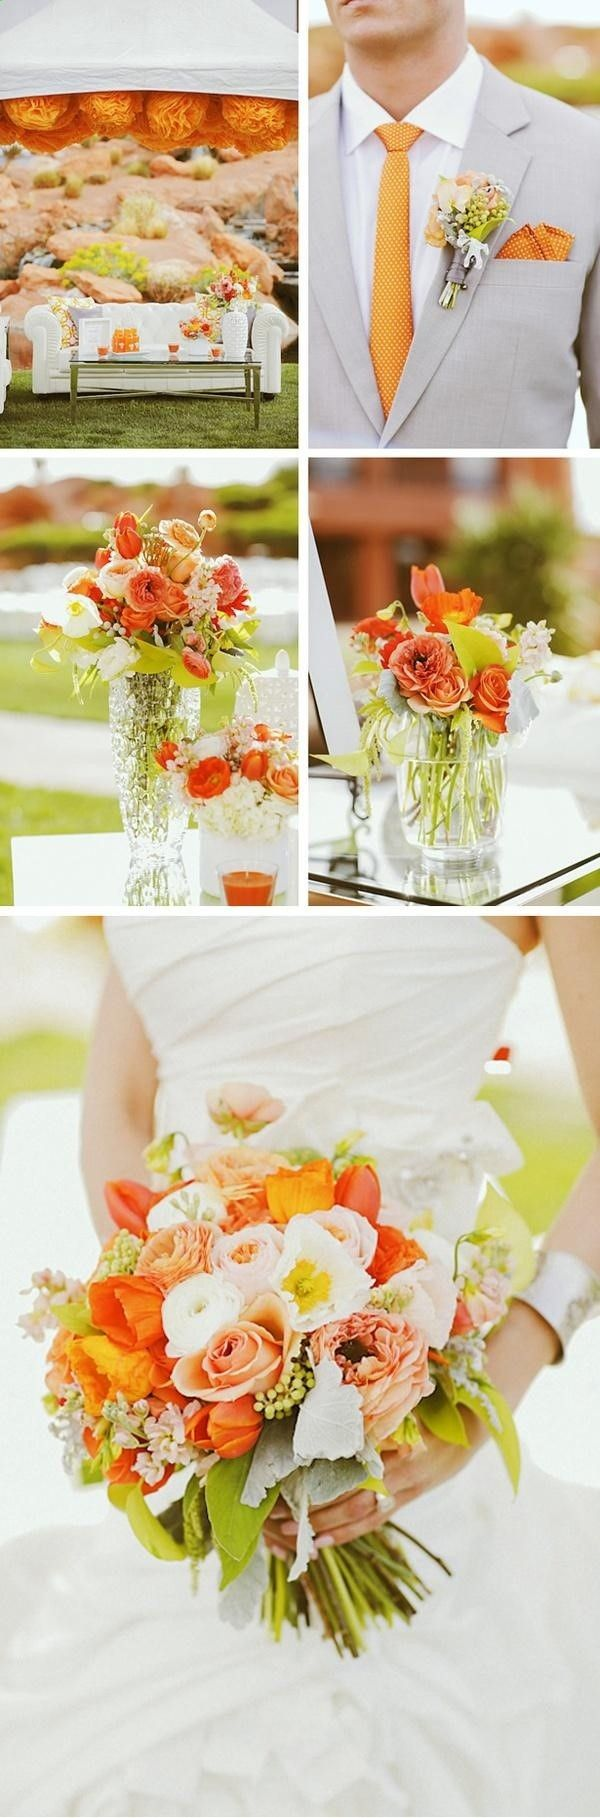 Orange wedding. View more tips  ideas on our Facebook Page : http://www.facebook.com/...